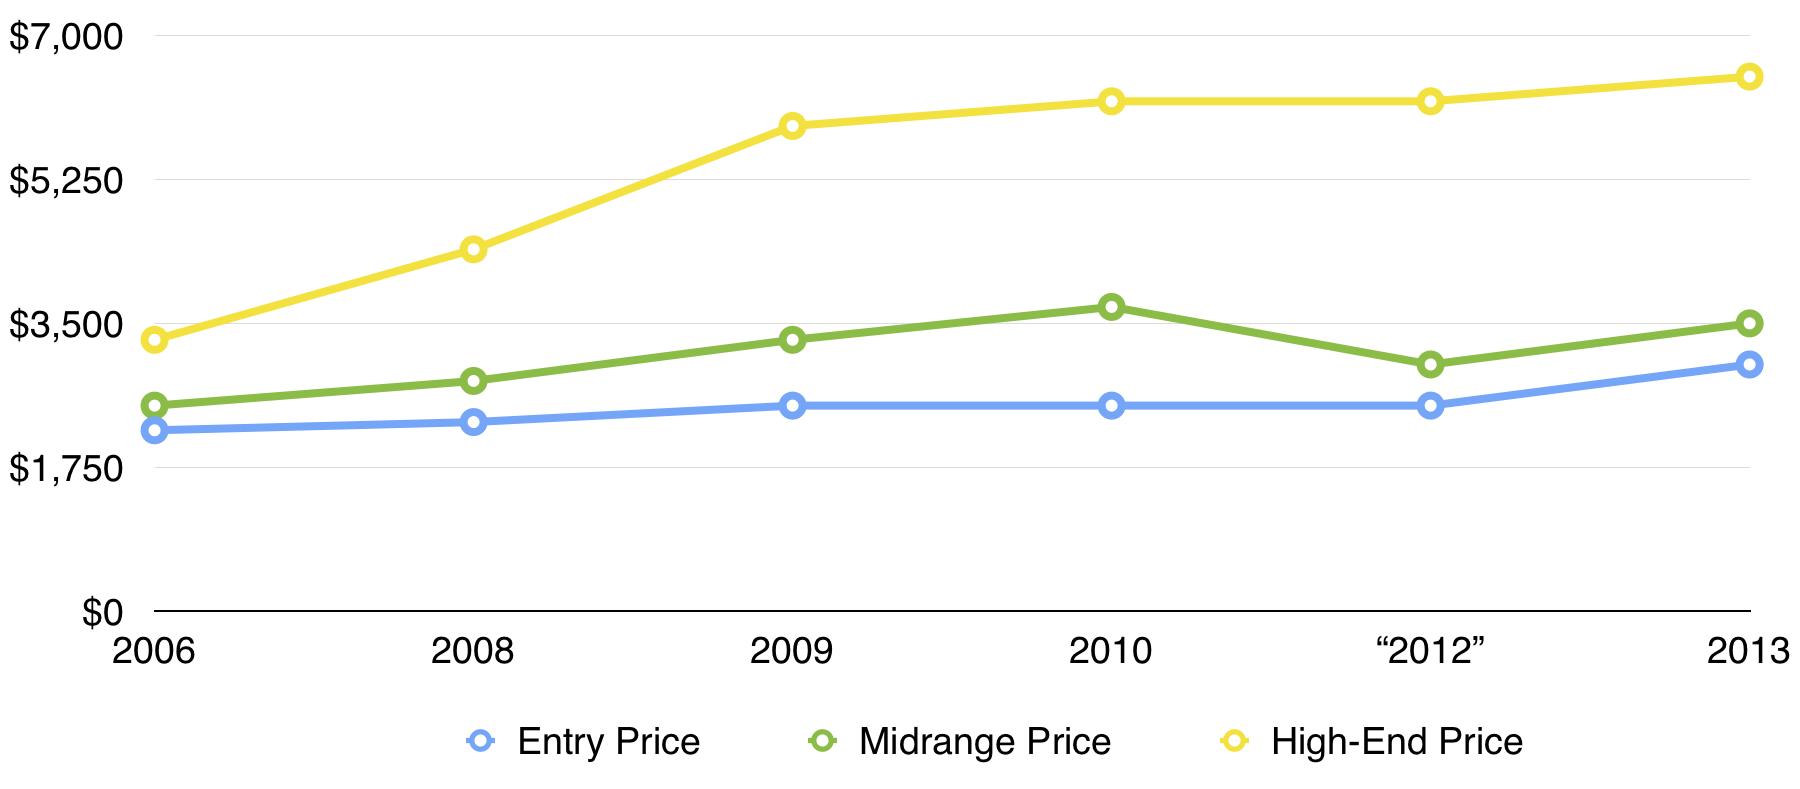 Graph of prices over time